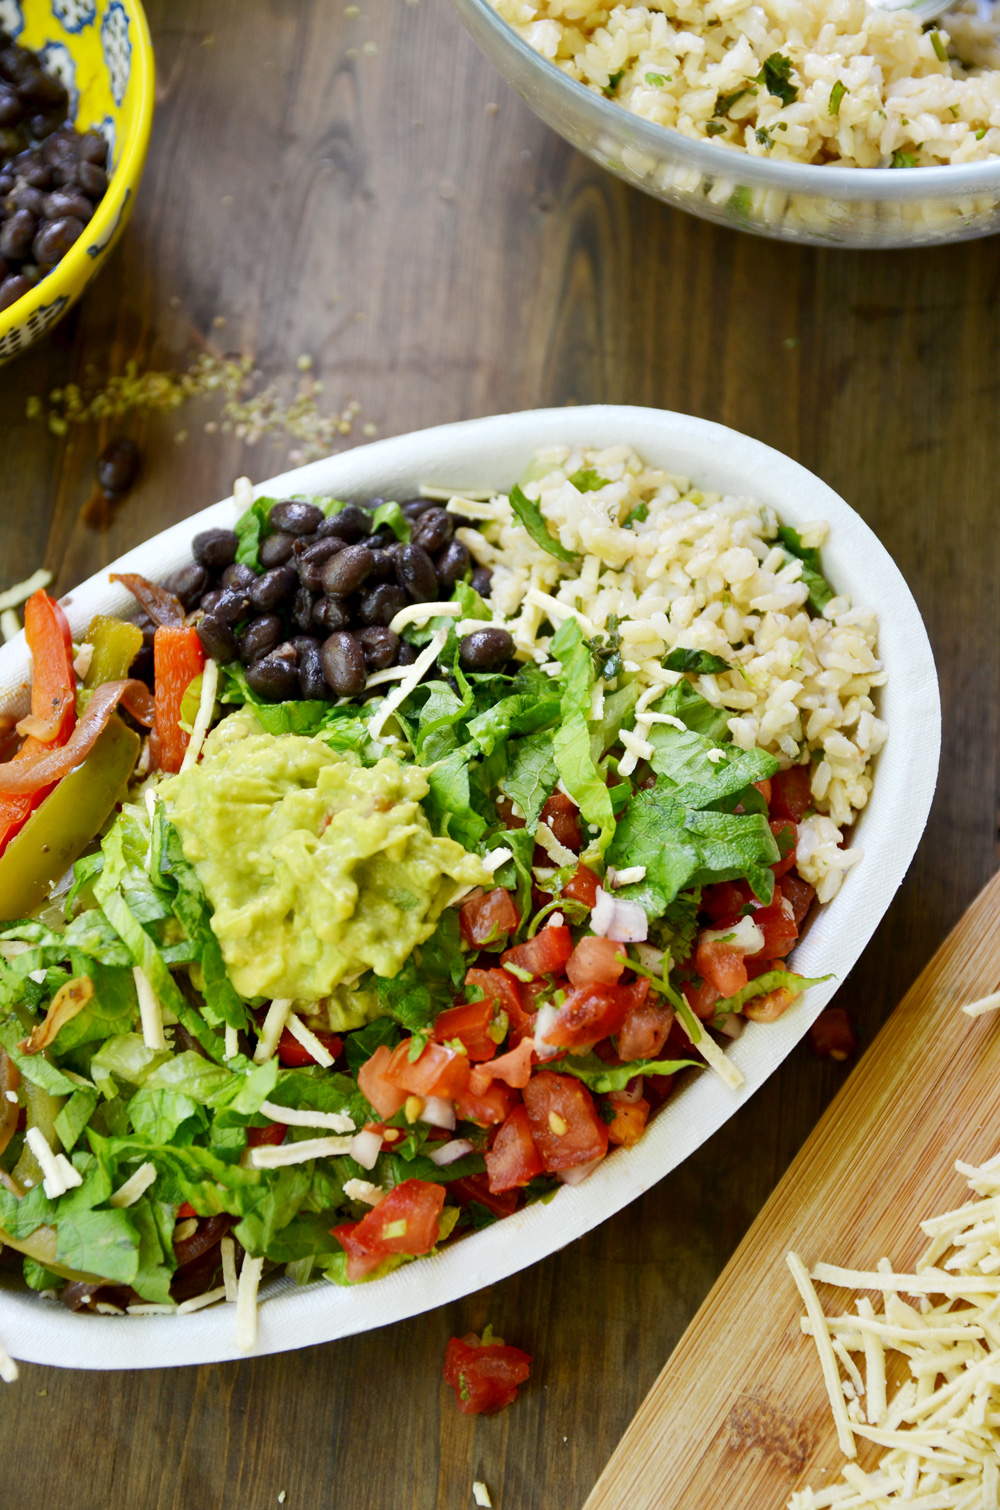 Making Chipotle Chicken Bowl At Home